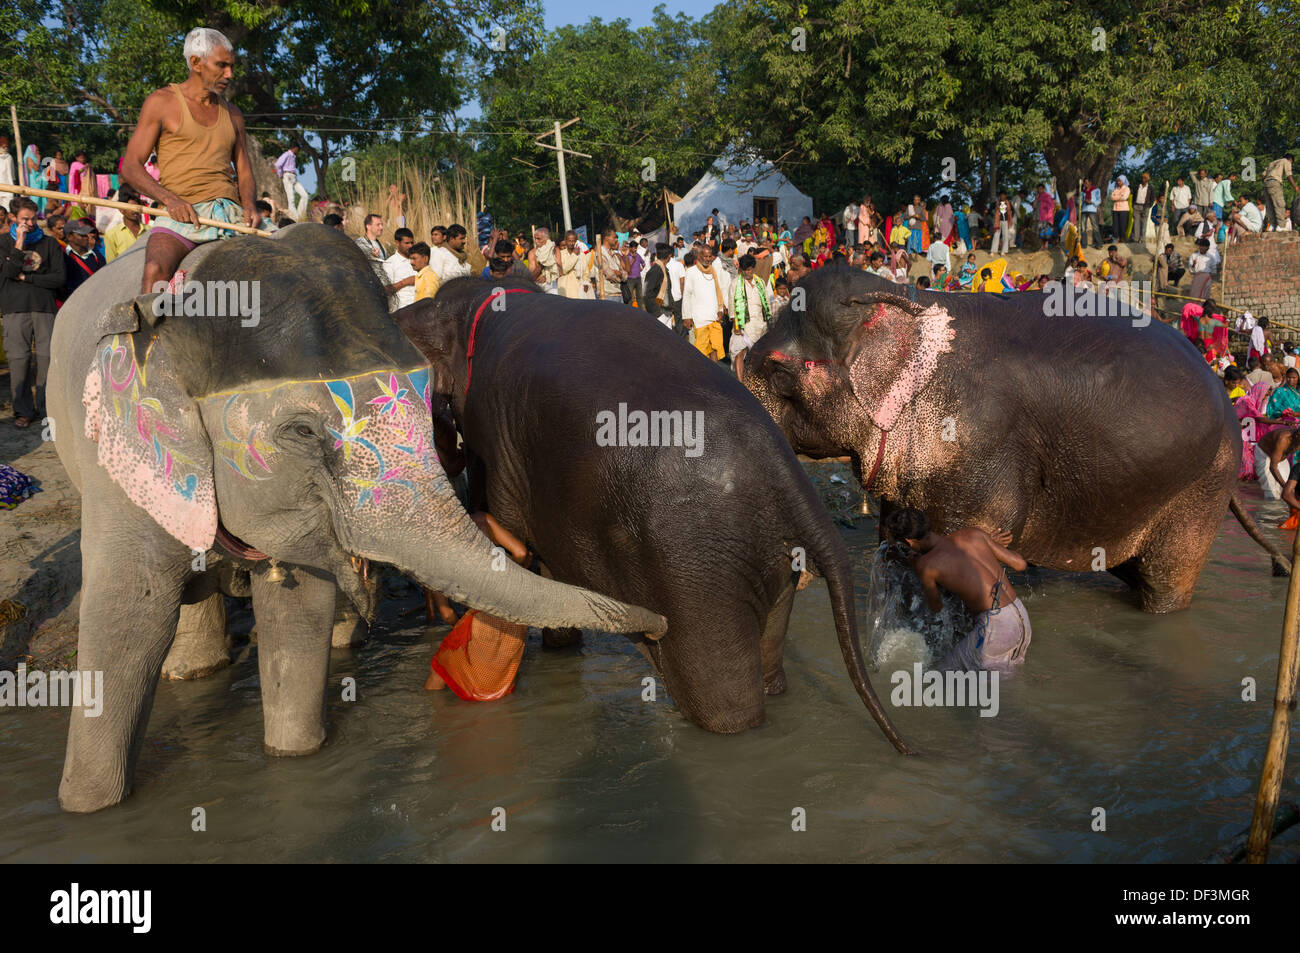 Mahout riding a painted elephant into the River Gandak for a bath, with other bathing elephants and pilgrims behind, Sonepur Mela, Sonepur, Bihar, India - Stock Image